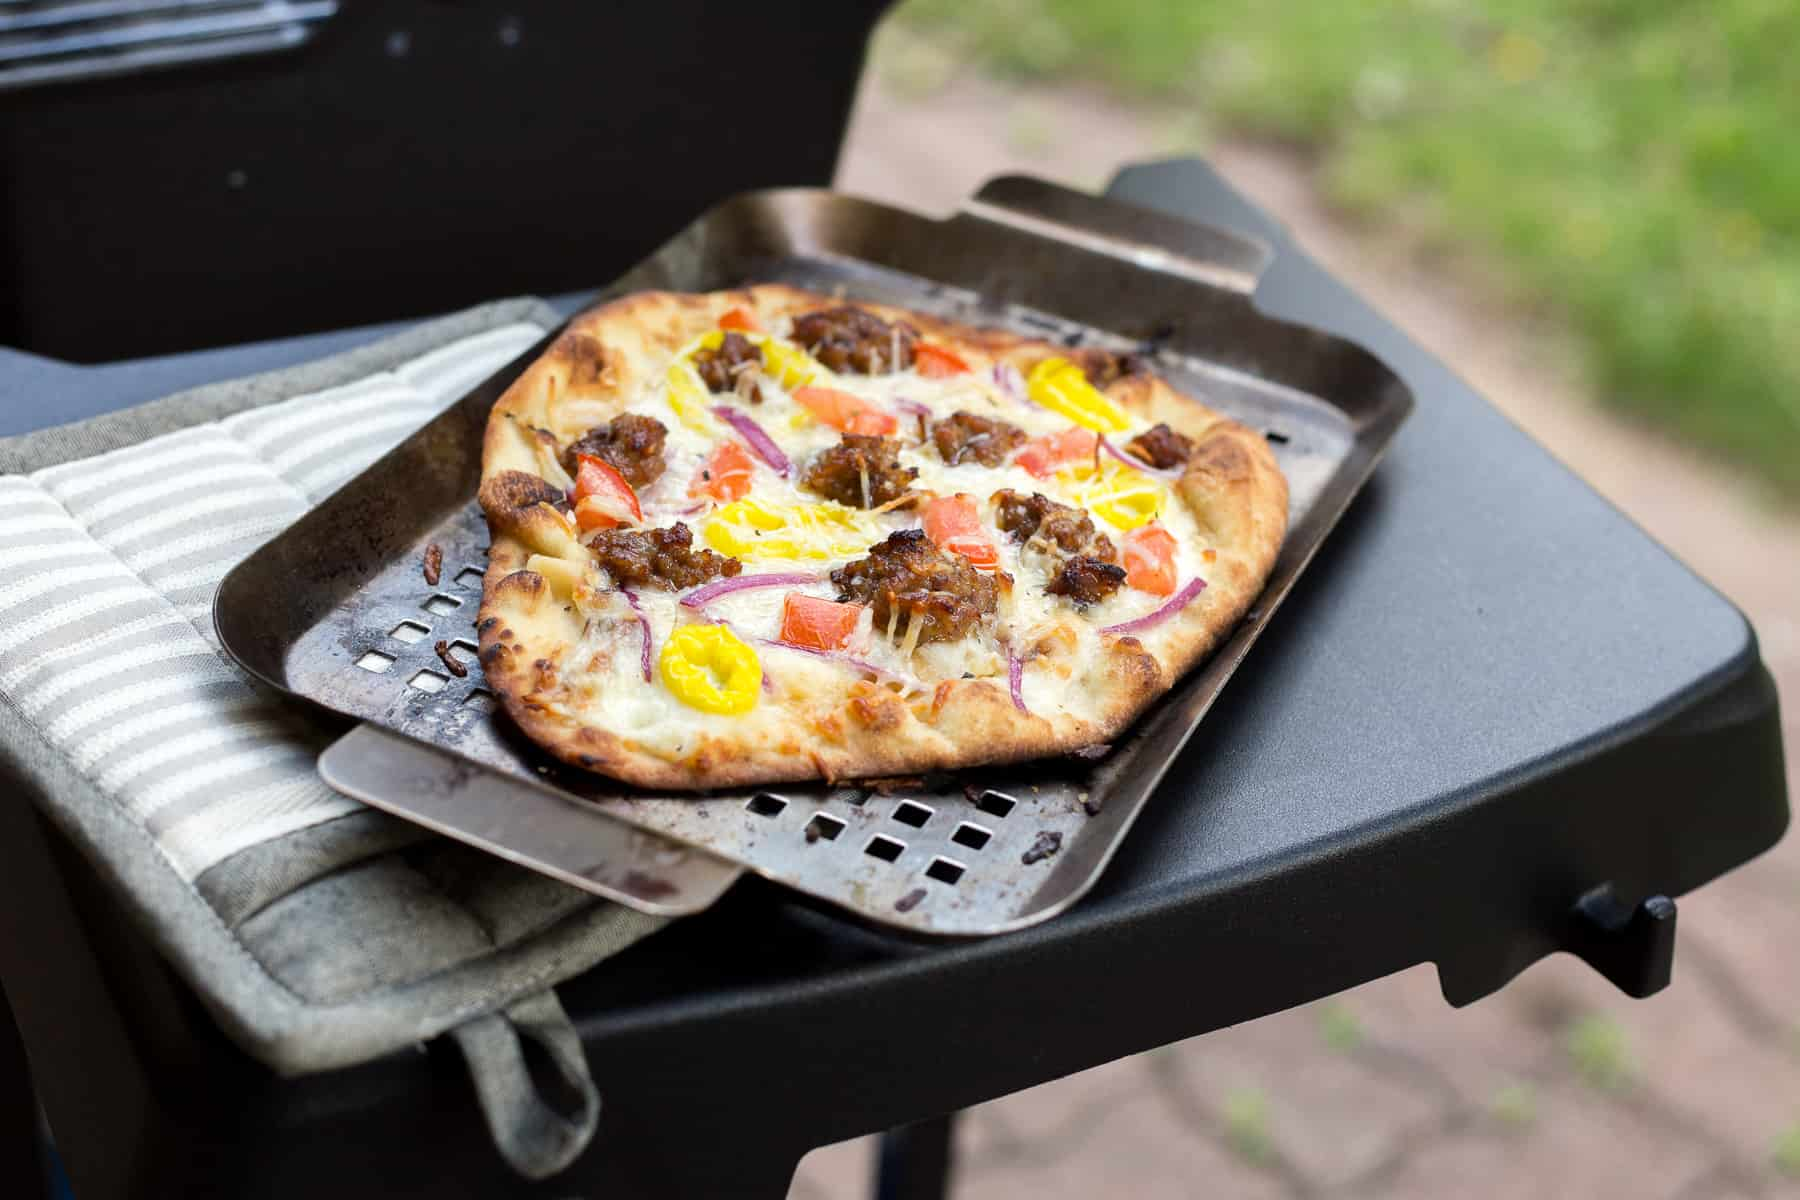 How to Grill Pizza + This Grilled Pizza Recipe Is Insanely Delicious